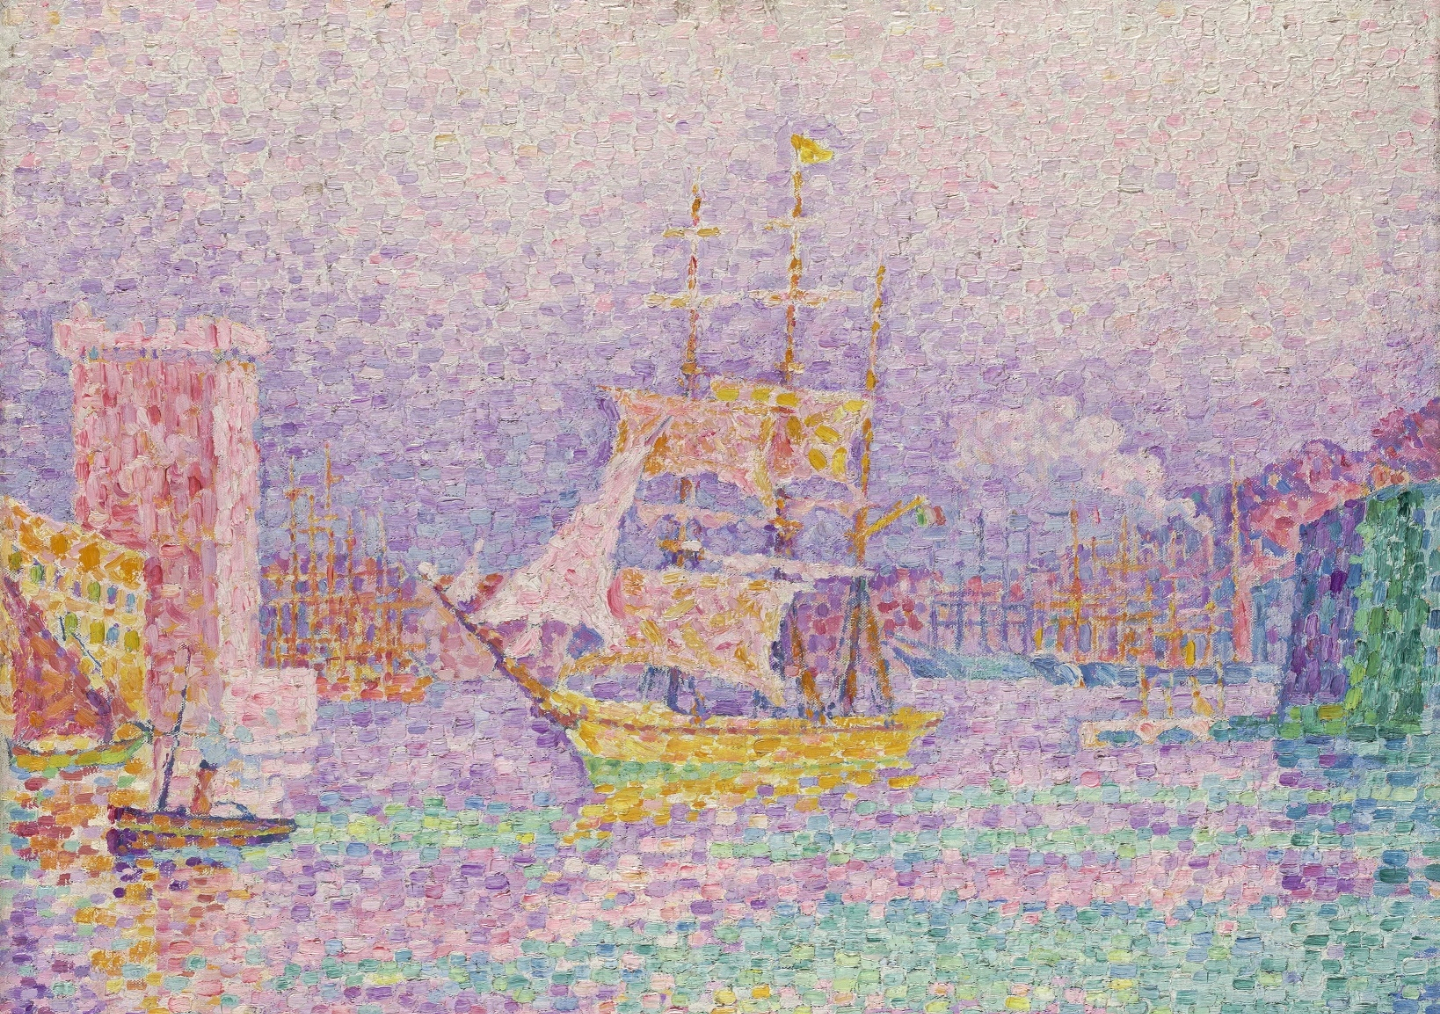 Paul Signac, 'Leaving the Port of Marseille' 1906/7 oil on canvas, 46 x 55.2 cm, The State Hermitage Museum, St Petersburg, Inv GE 6524. Photo: © The State Hermitage Museum 2018, Vladimir